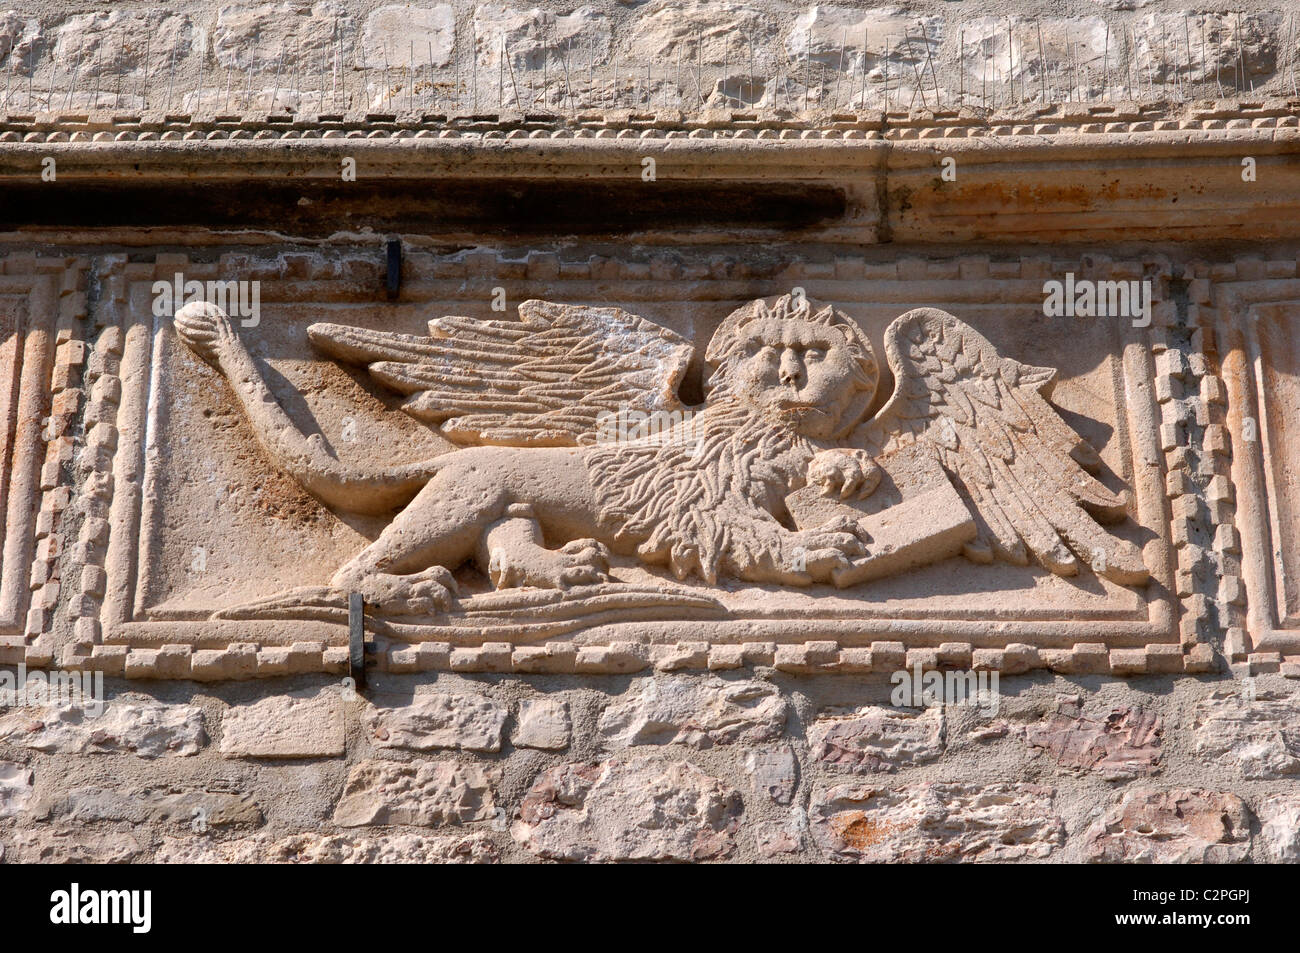 Stone relief adornment, Land Gate, Korcula, Dalmatian Coast - Stock Image